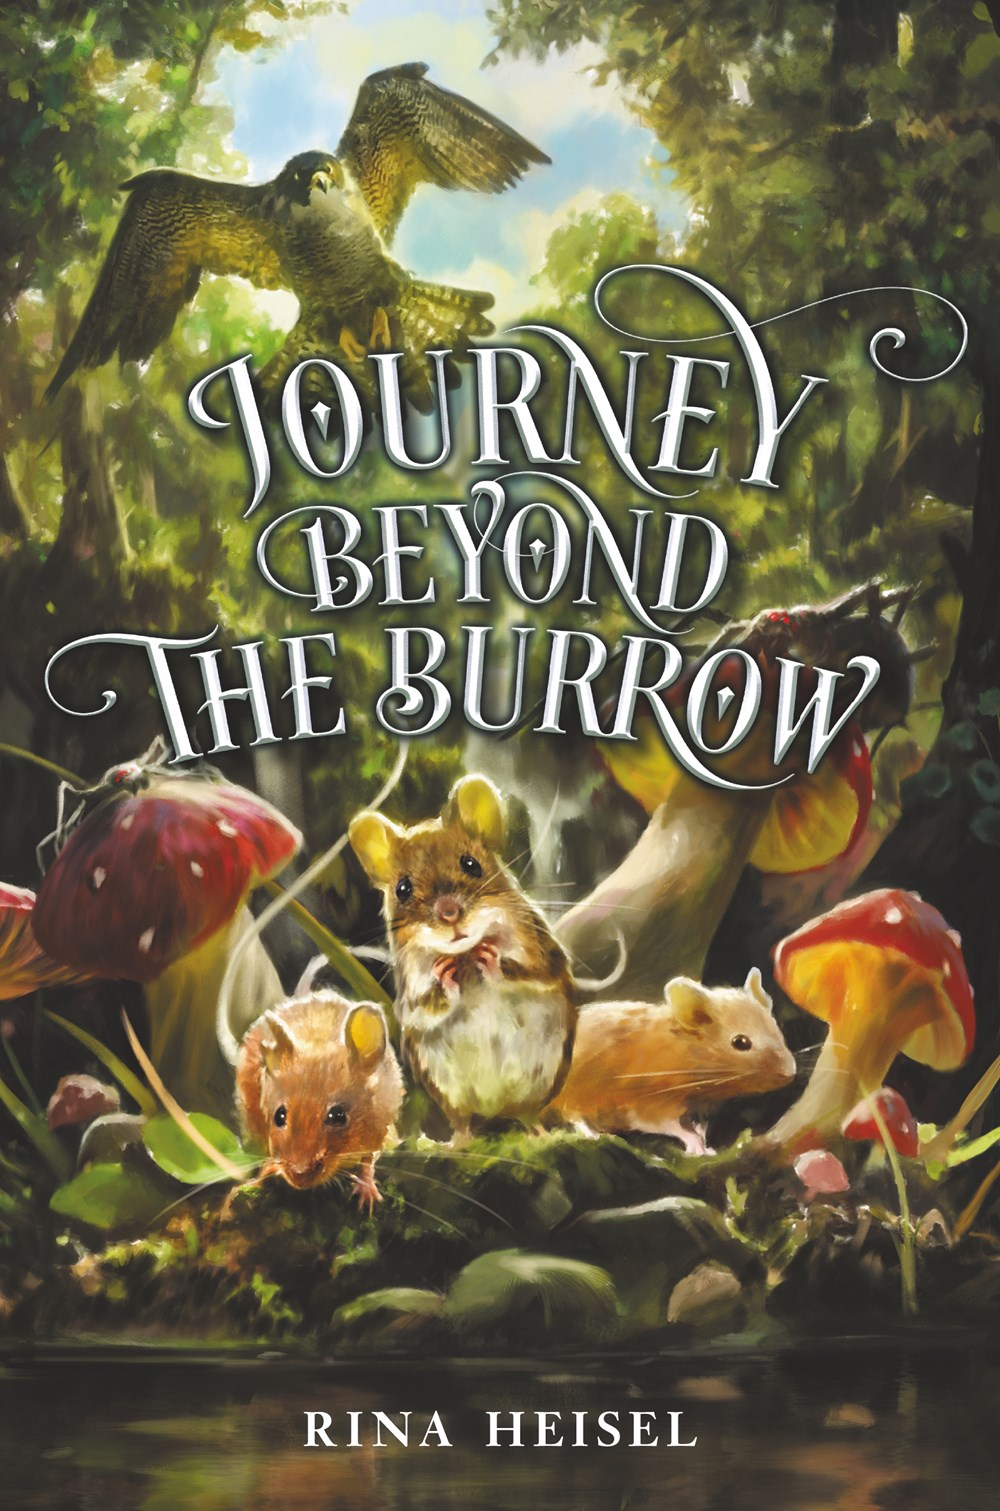 Digging Into Journey Beyond the Burrow